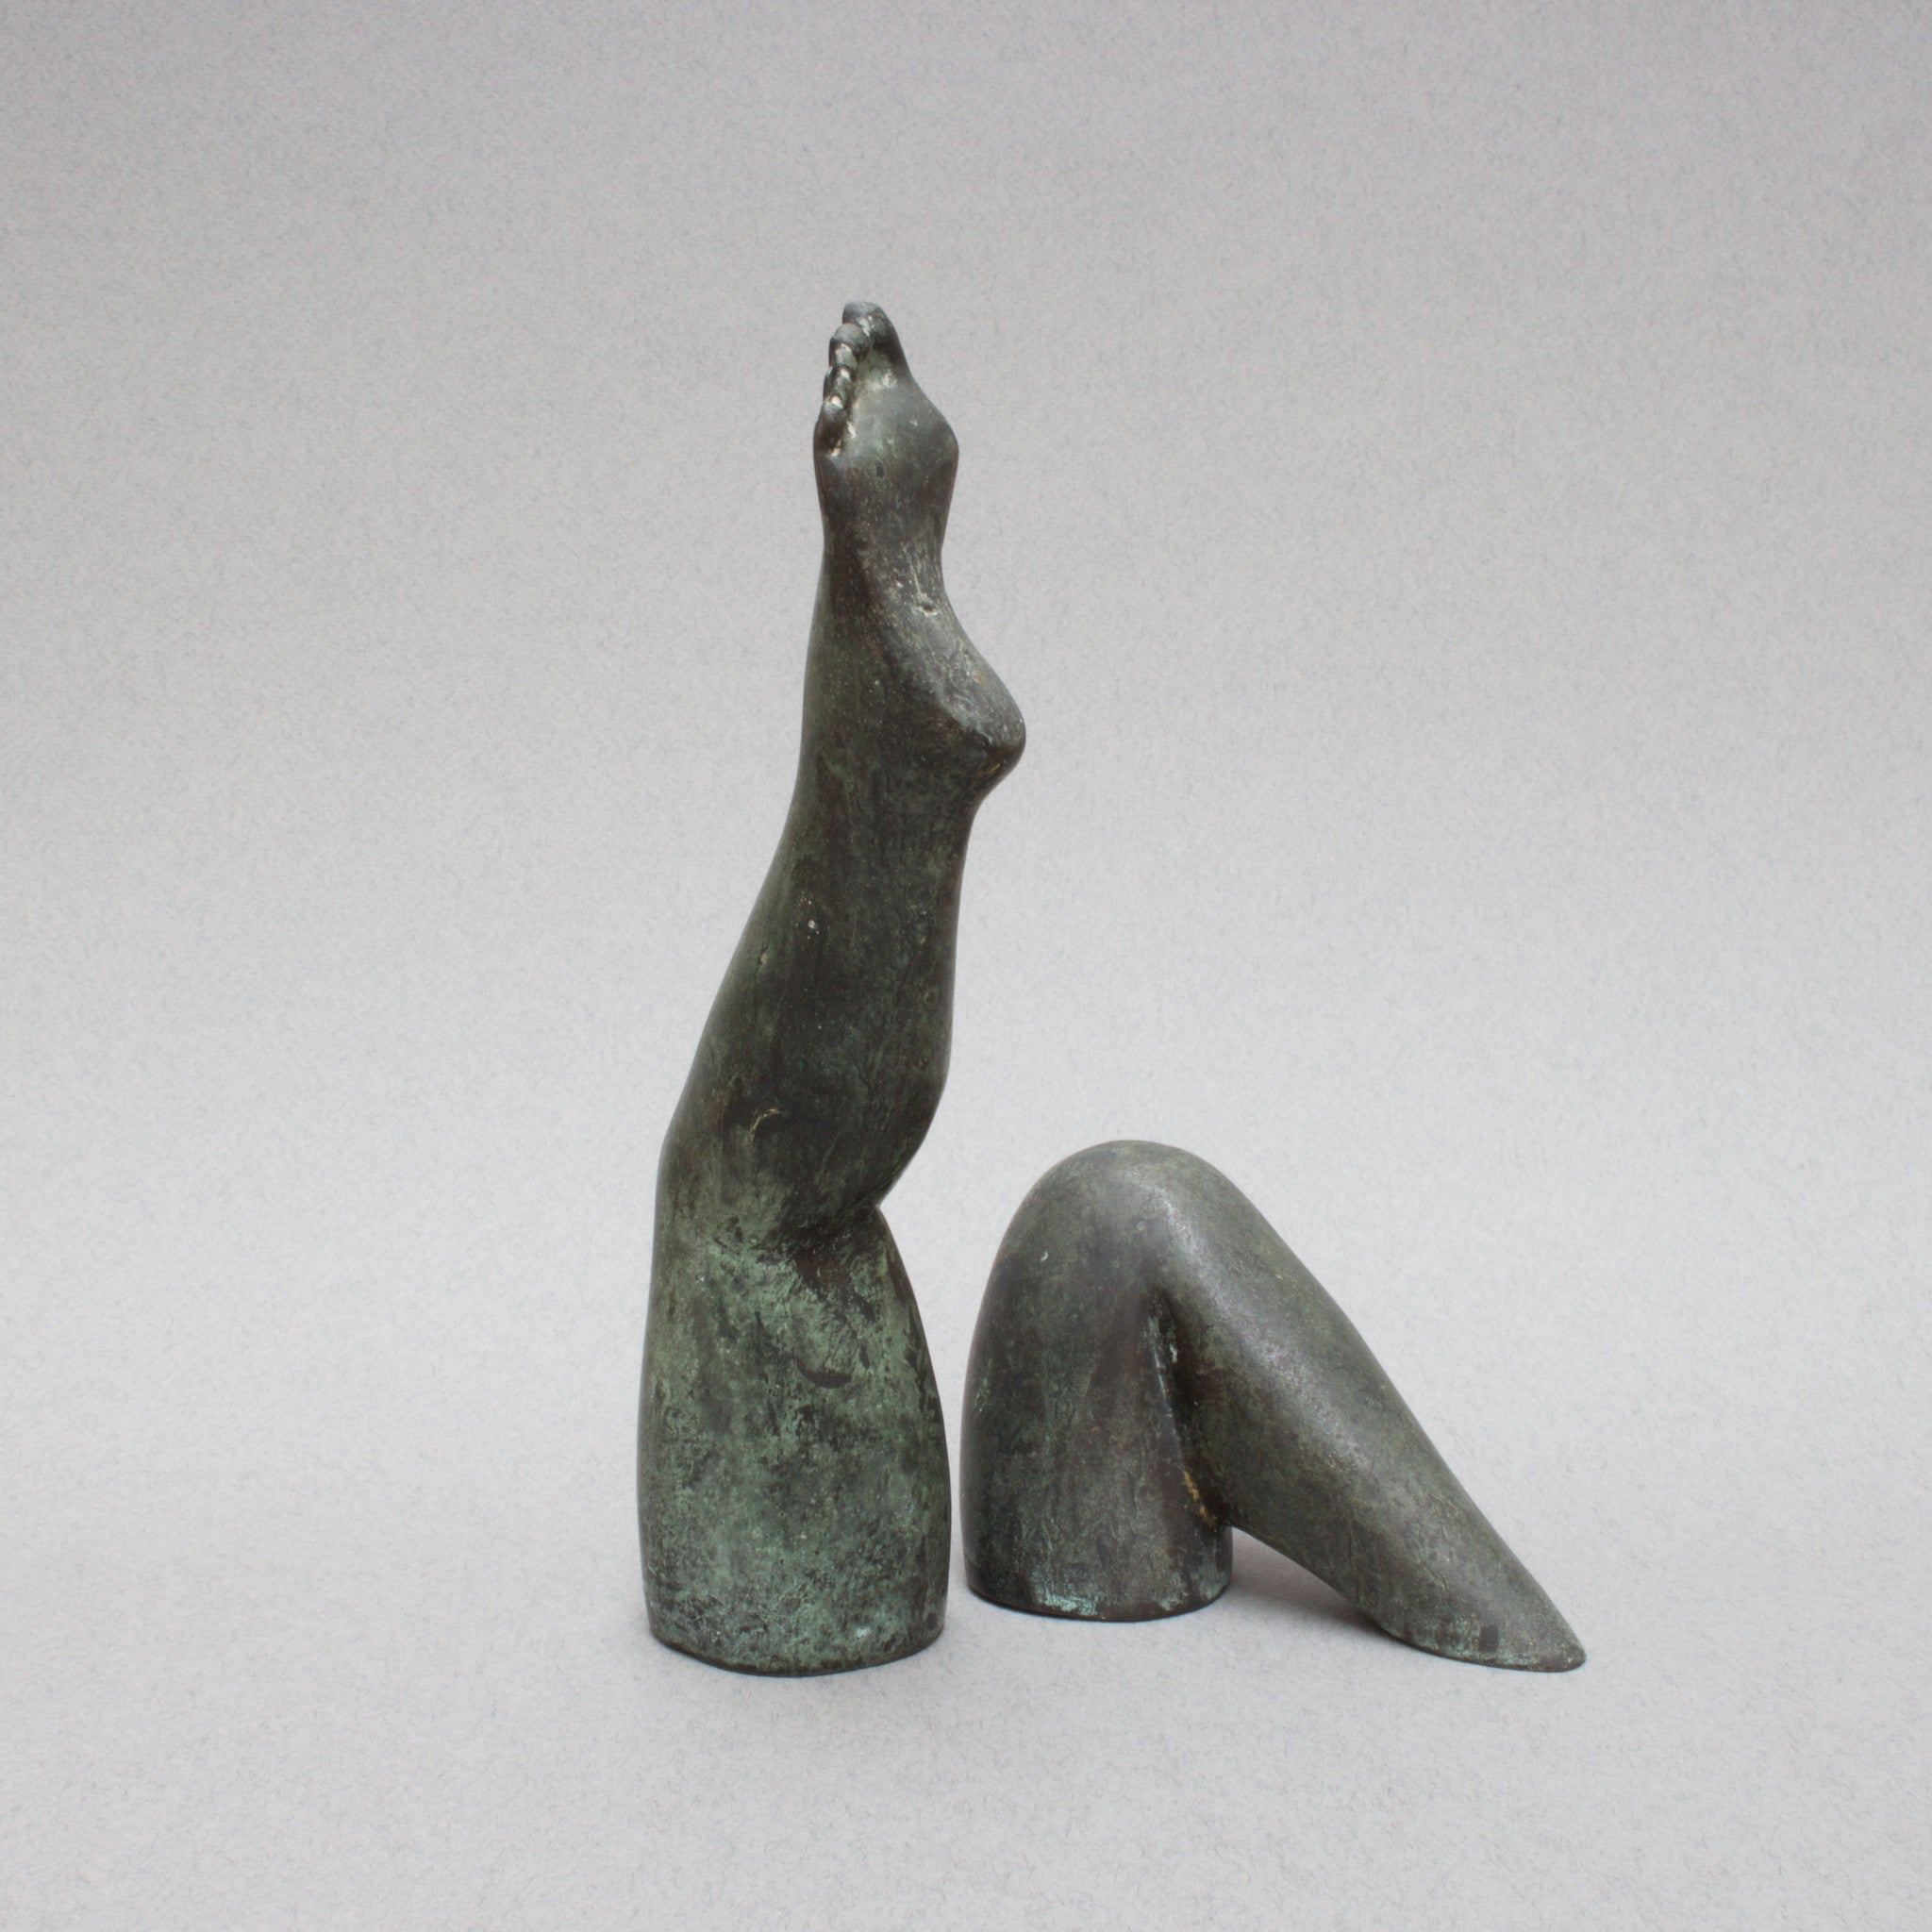 'Legs Emerging from Water' Sculpture by Pietrina Checcacci (c. 1970s)